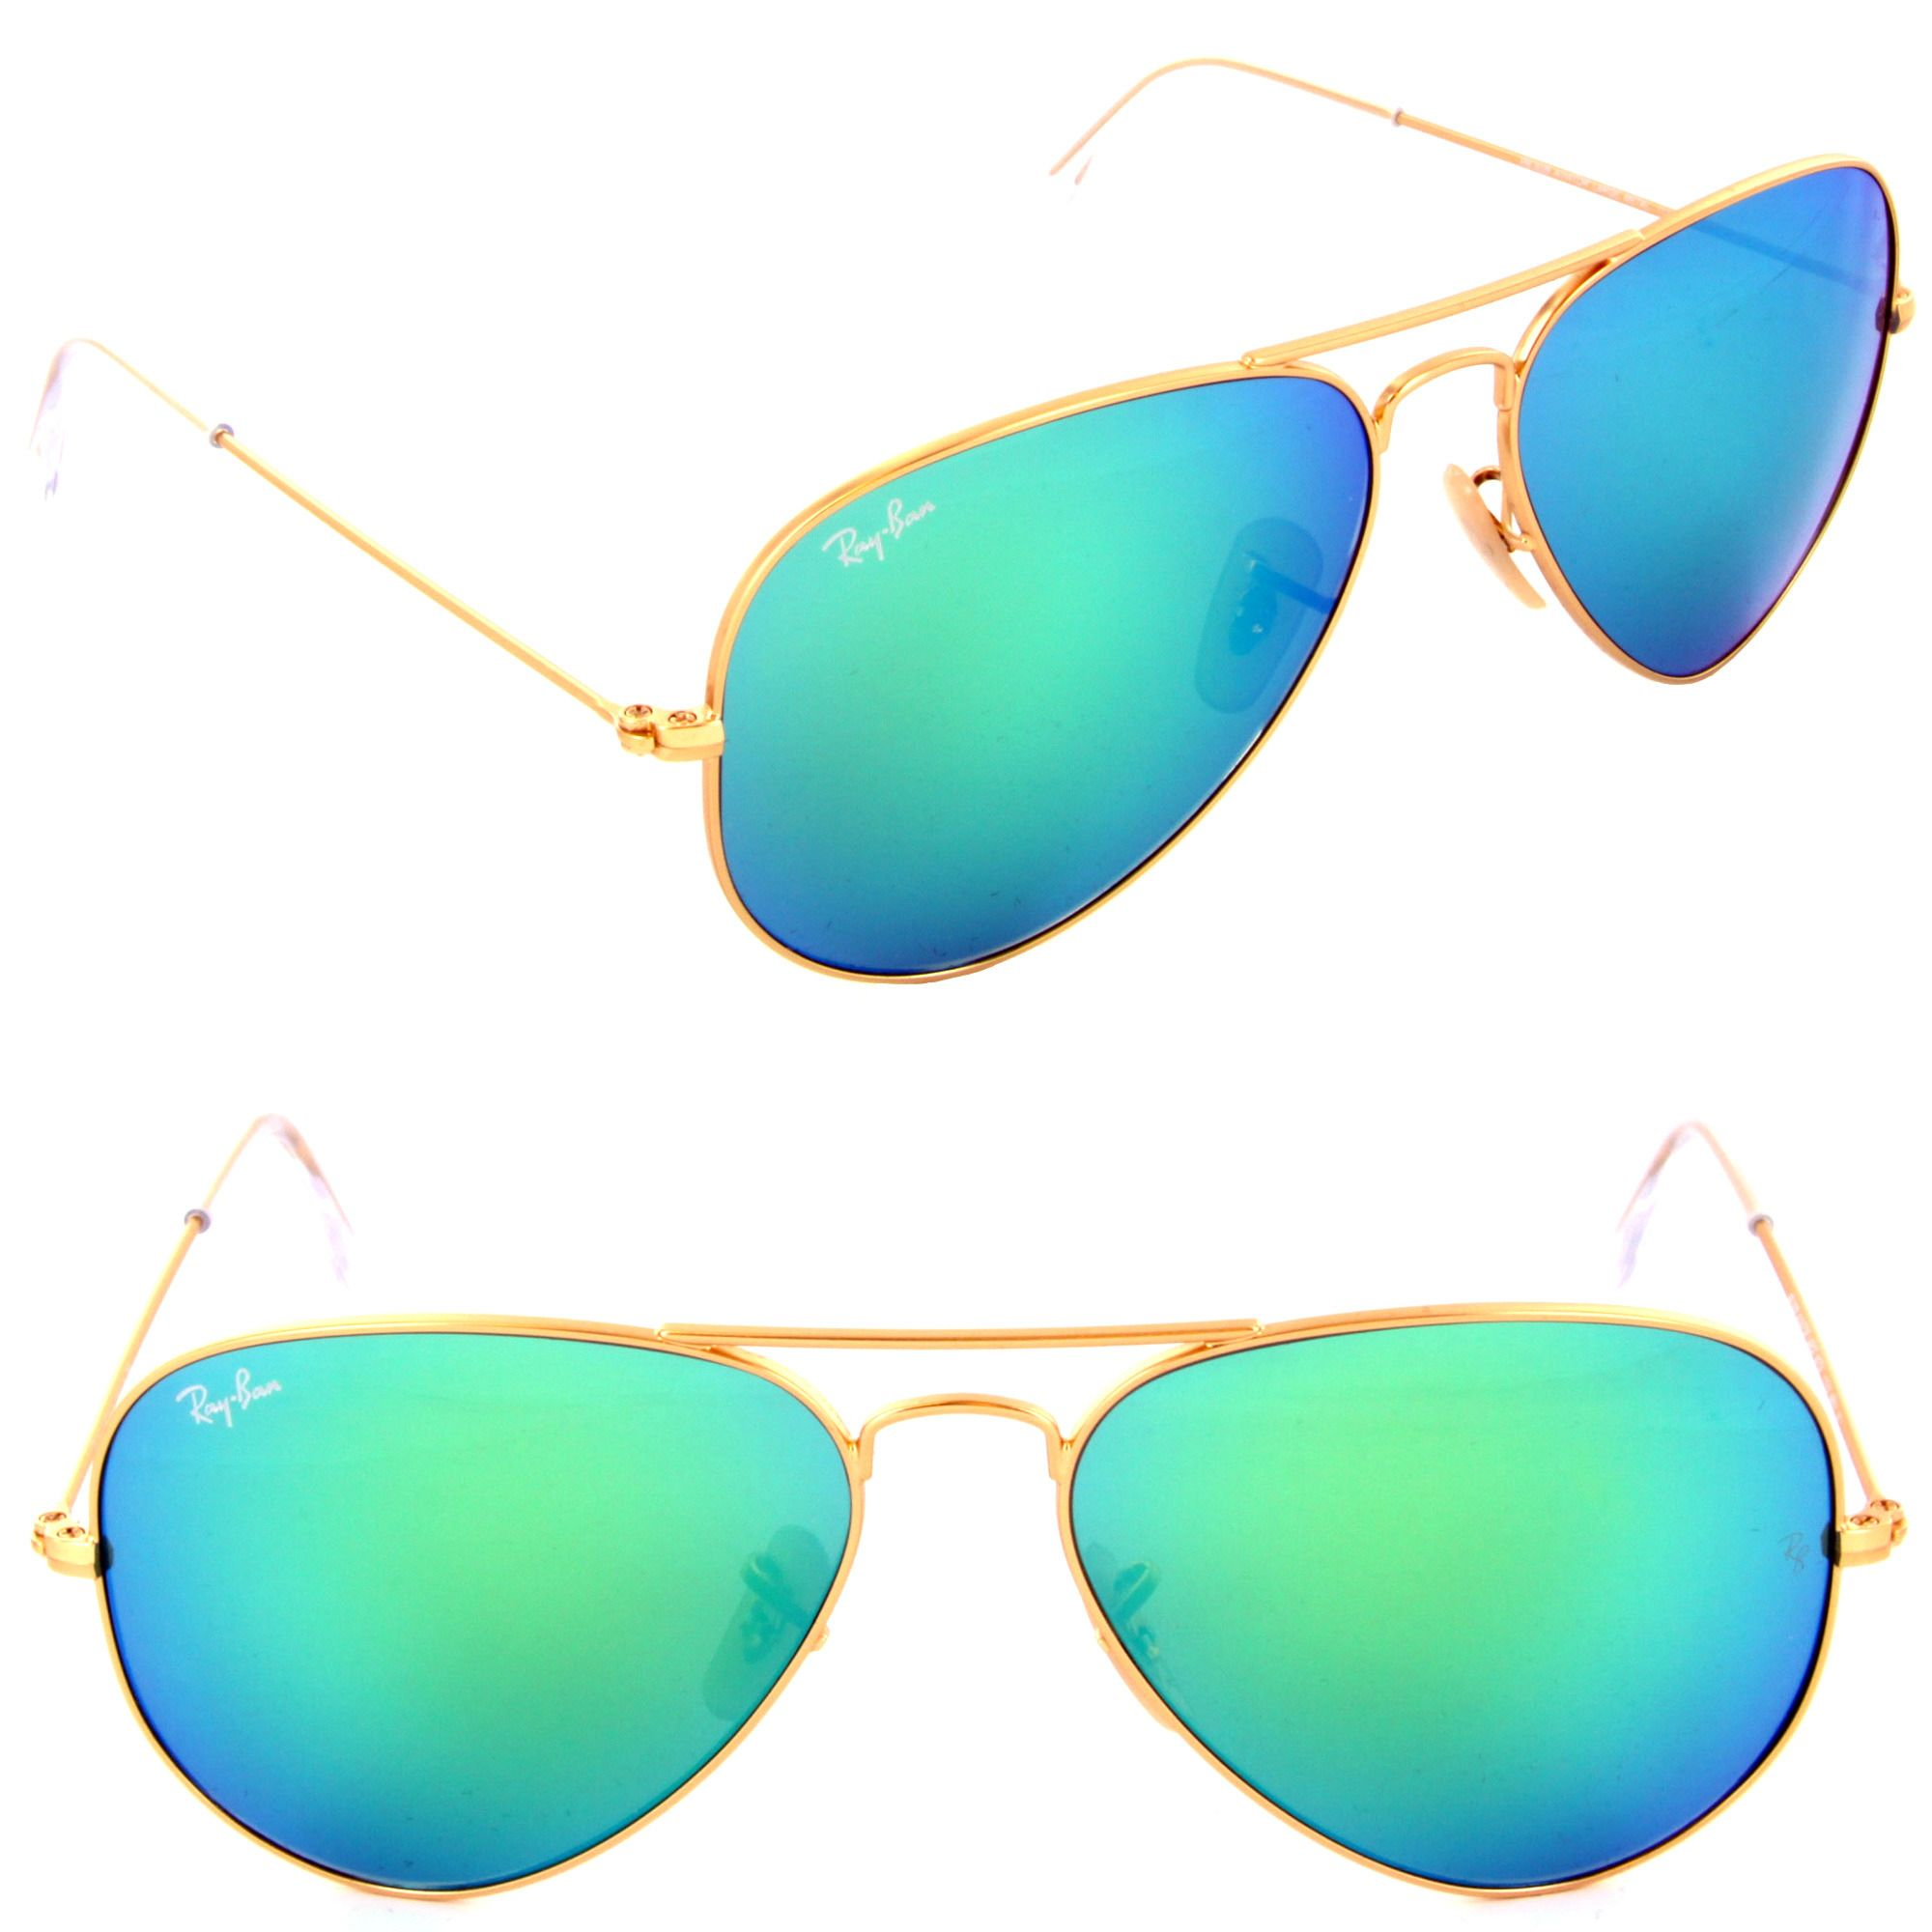 ac438aa018 Ray Ban RB 3025 112 19 Metal Aviator Gold Green Mirror Sunglasses 55 or  58mm